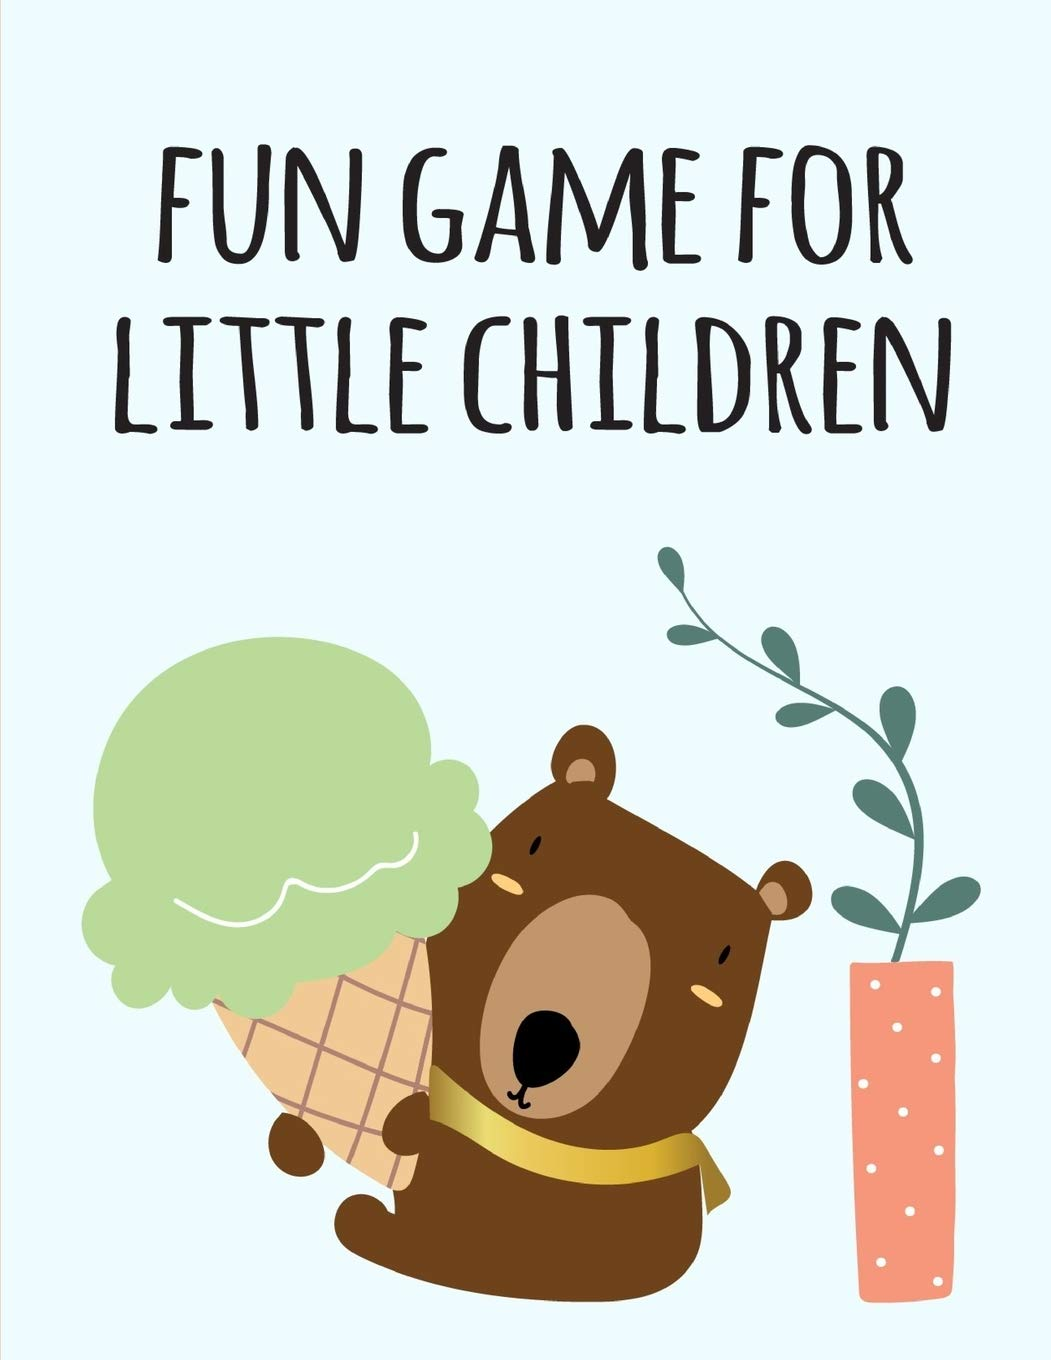 Fun Game For Little Children Coloring Pages For Children Ages 2 5 From Funny And Variety Amazing Image Animals Jokes Sheldon Mante 9781671628137 Amazon Com Books